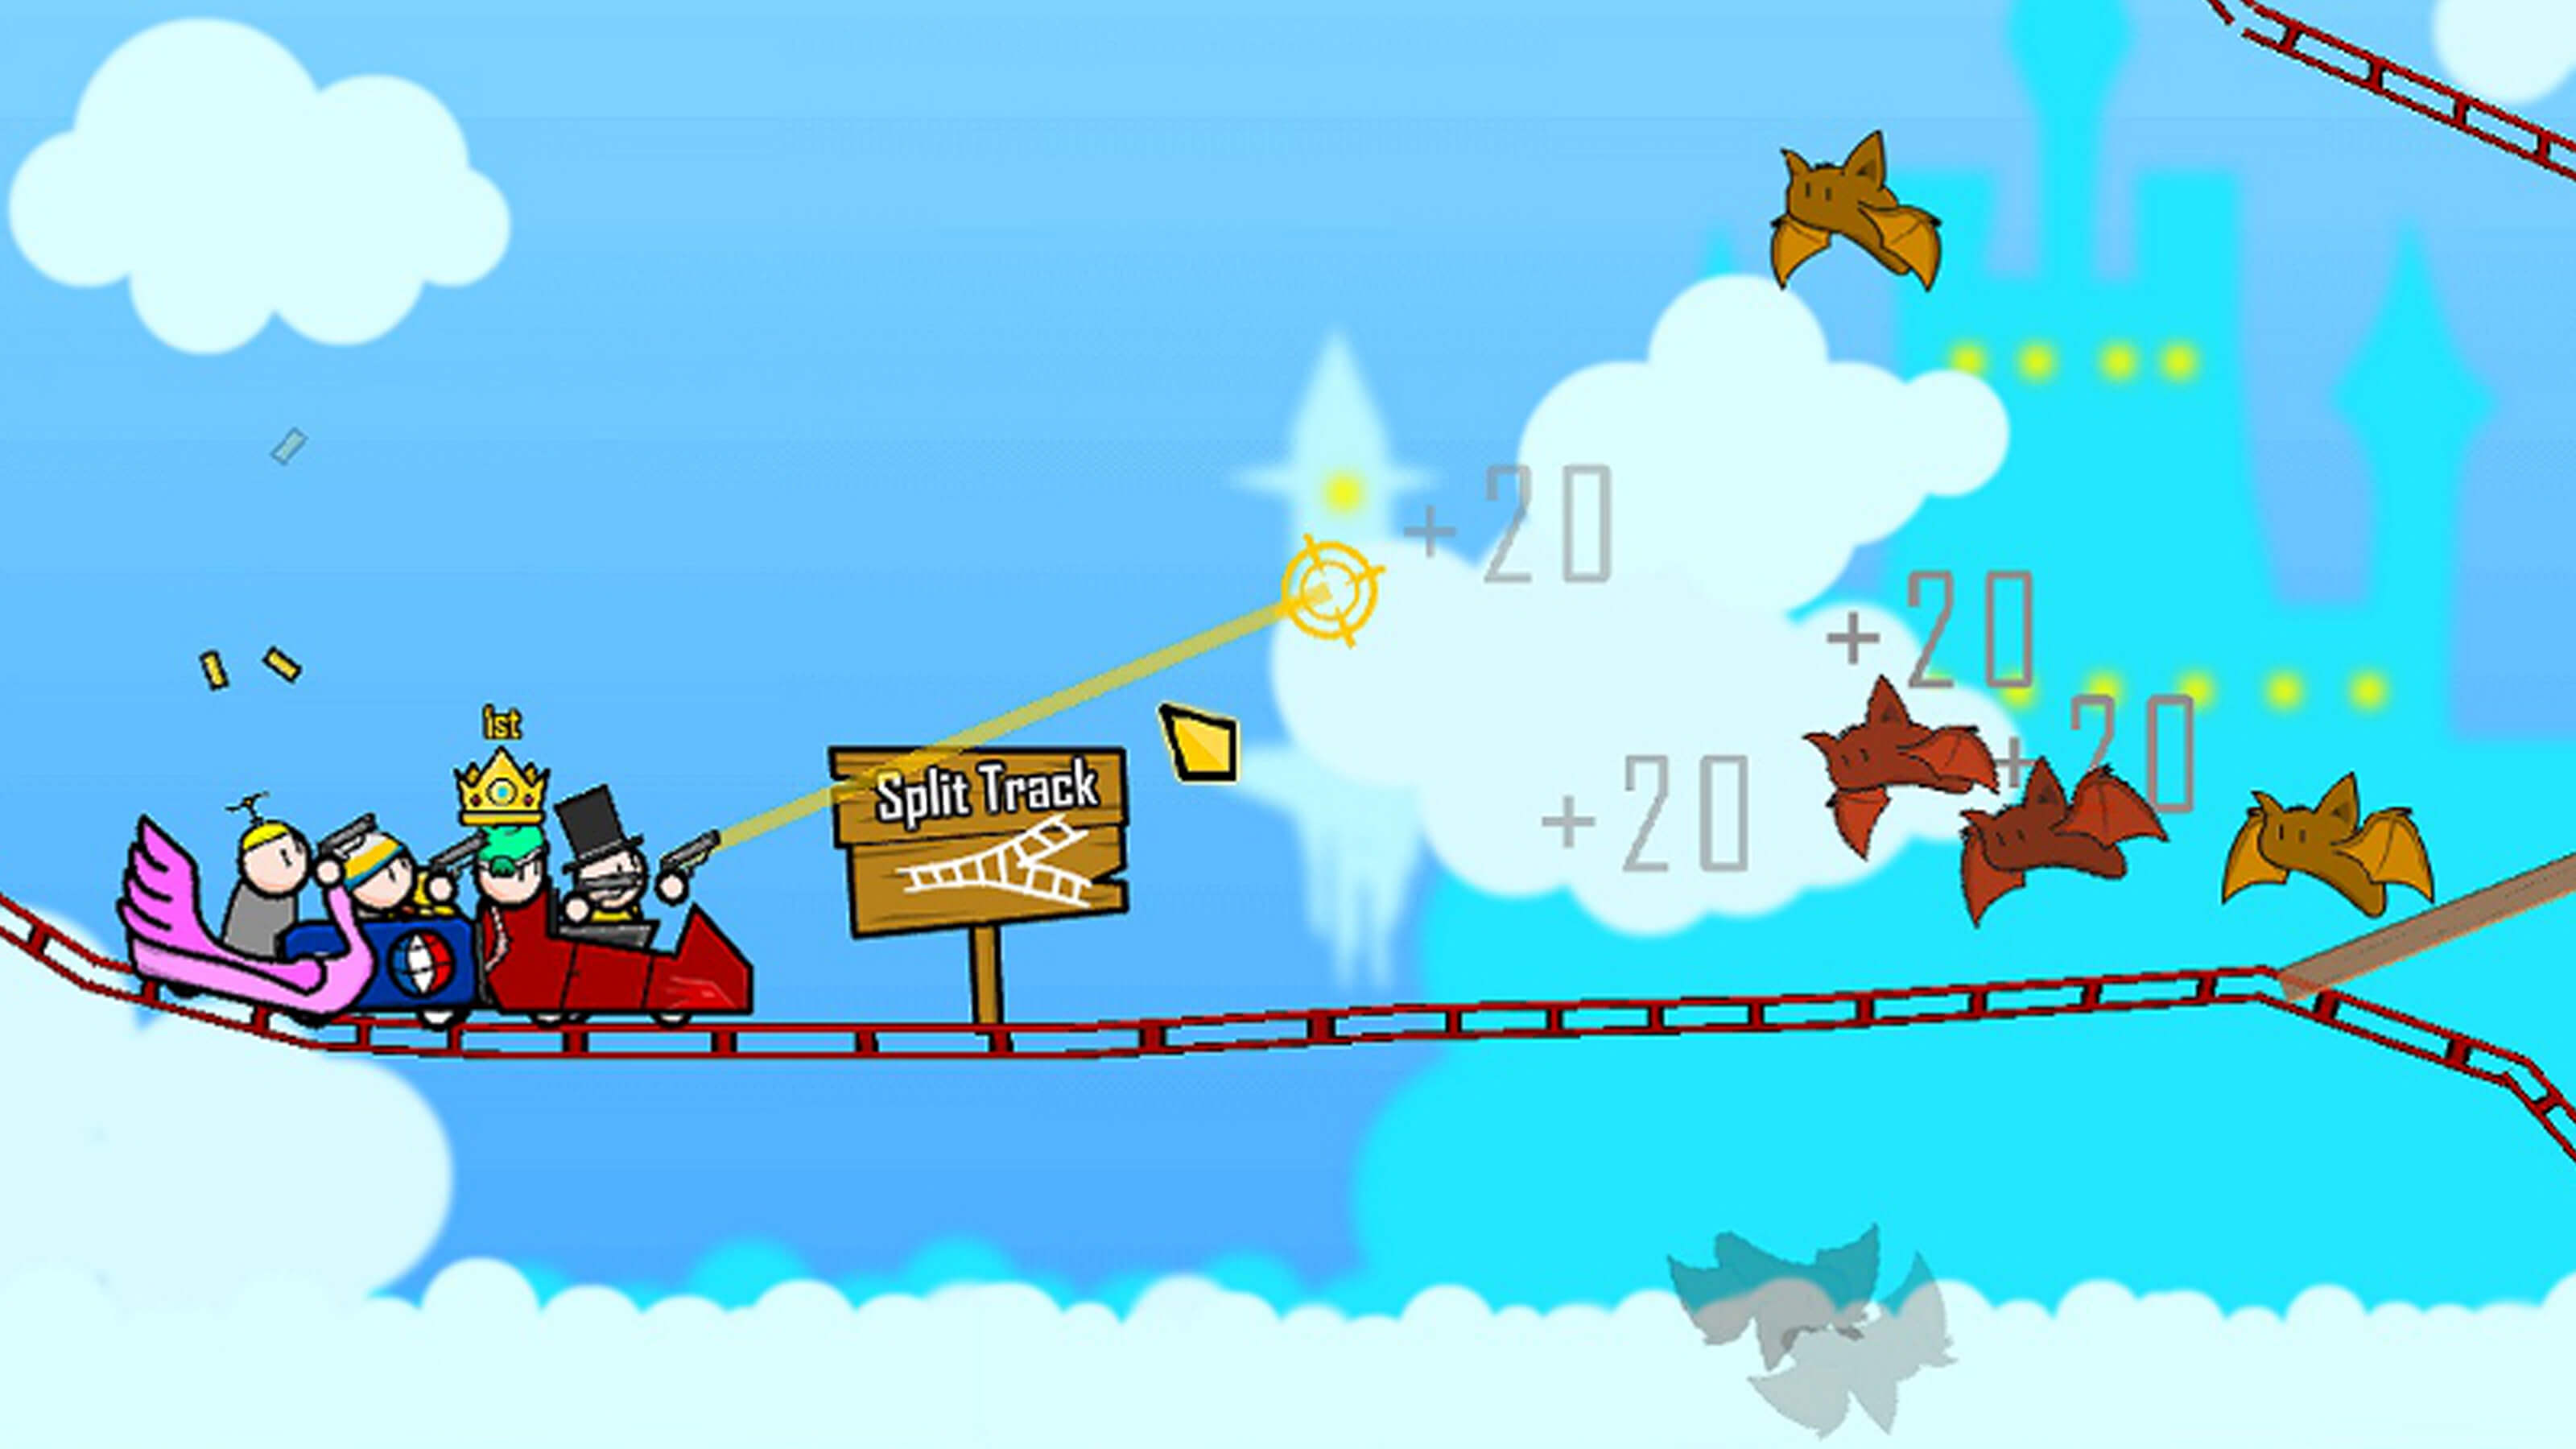 Four player characters on a roller coaster track suspended high in the sky take aim at incoming bats